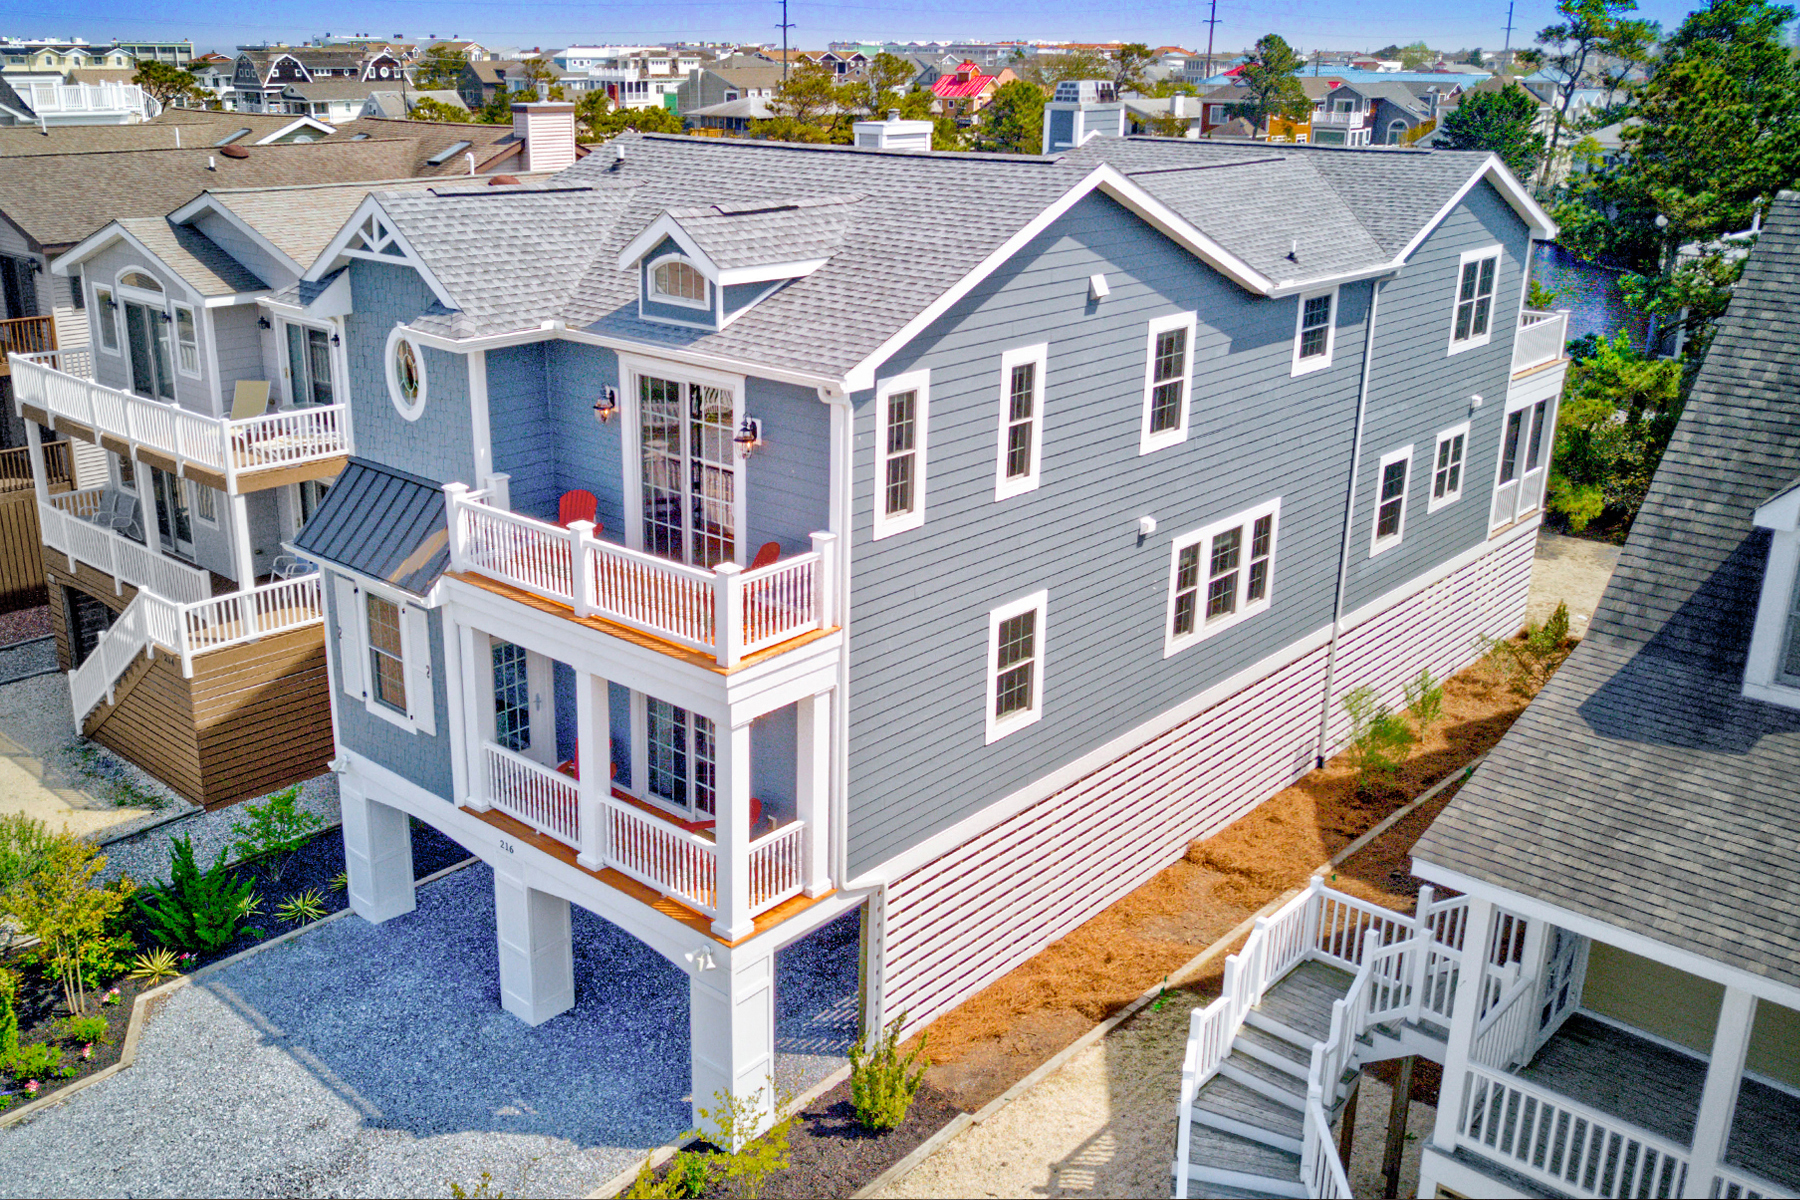 Single Family Home for Sale at 216 2nd St , Bethany Beach, DE 19930 216 2nd St, Bethany Beach, Delaware 19930 United States